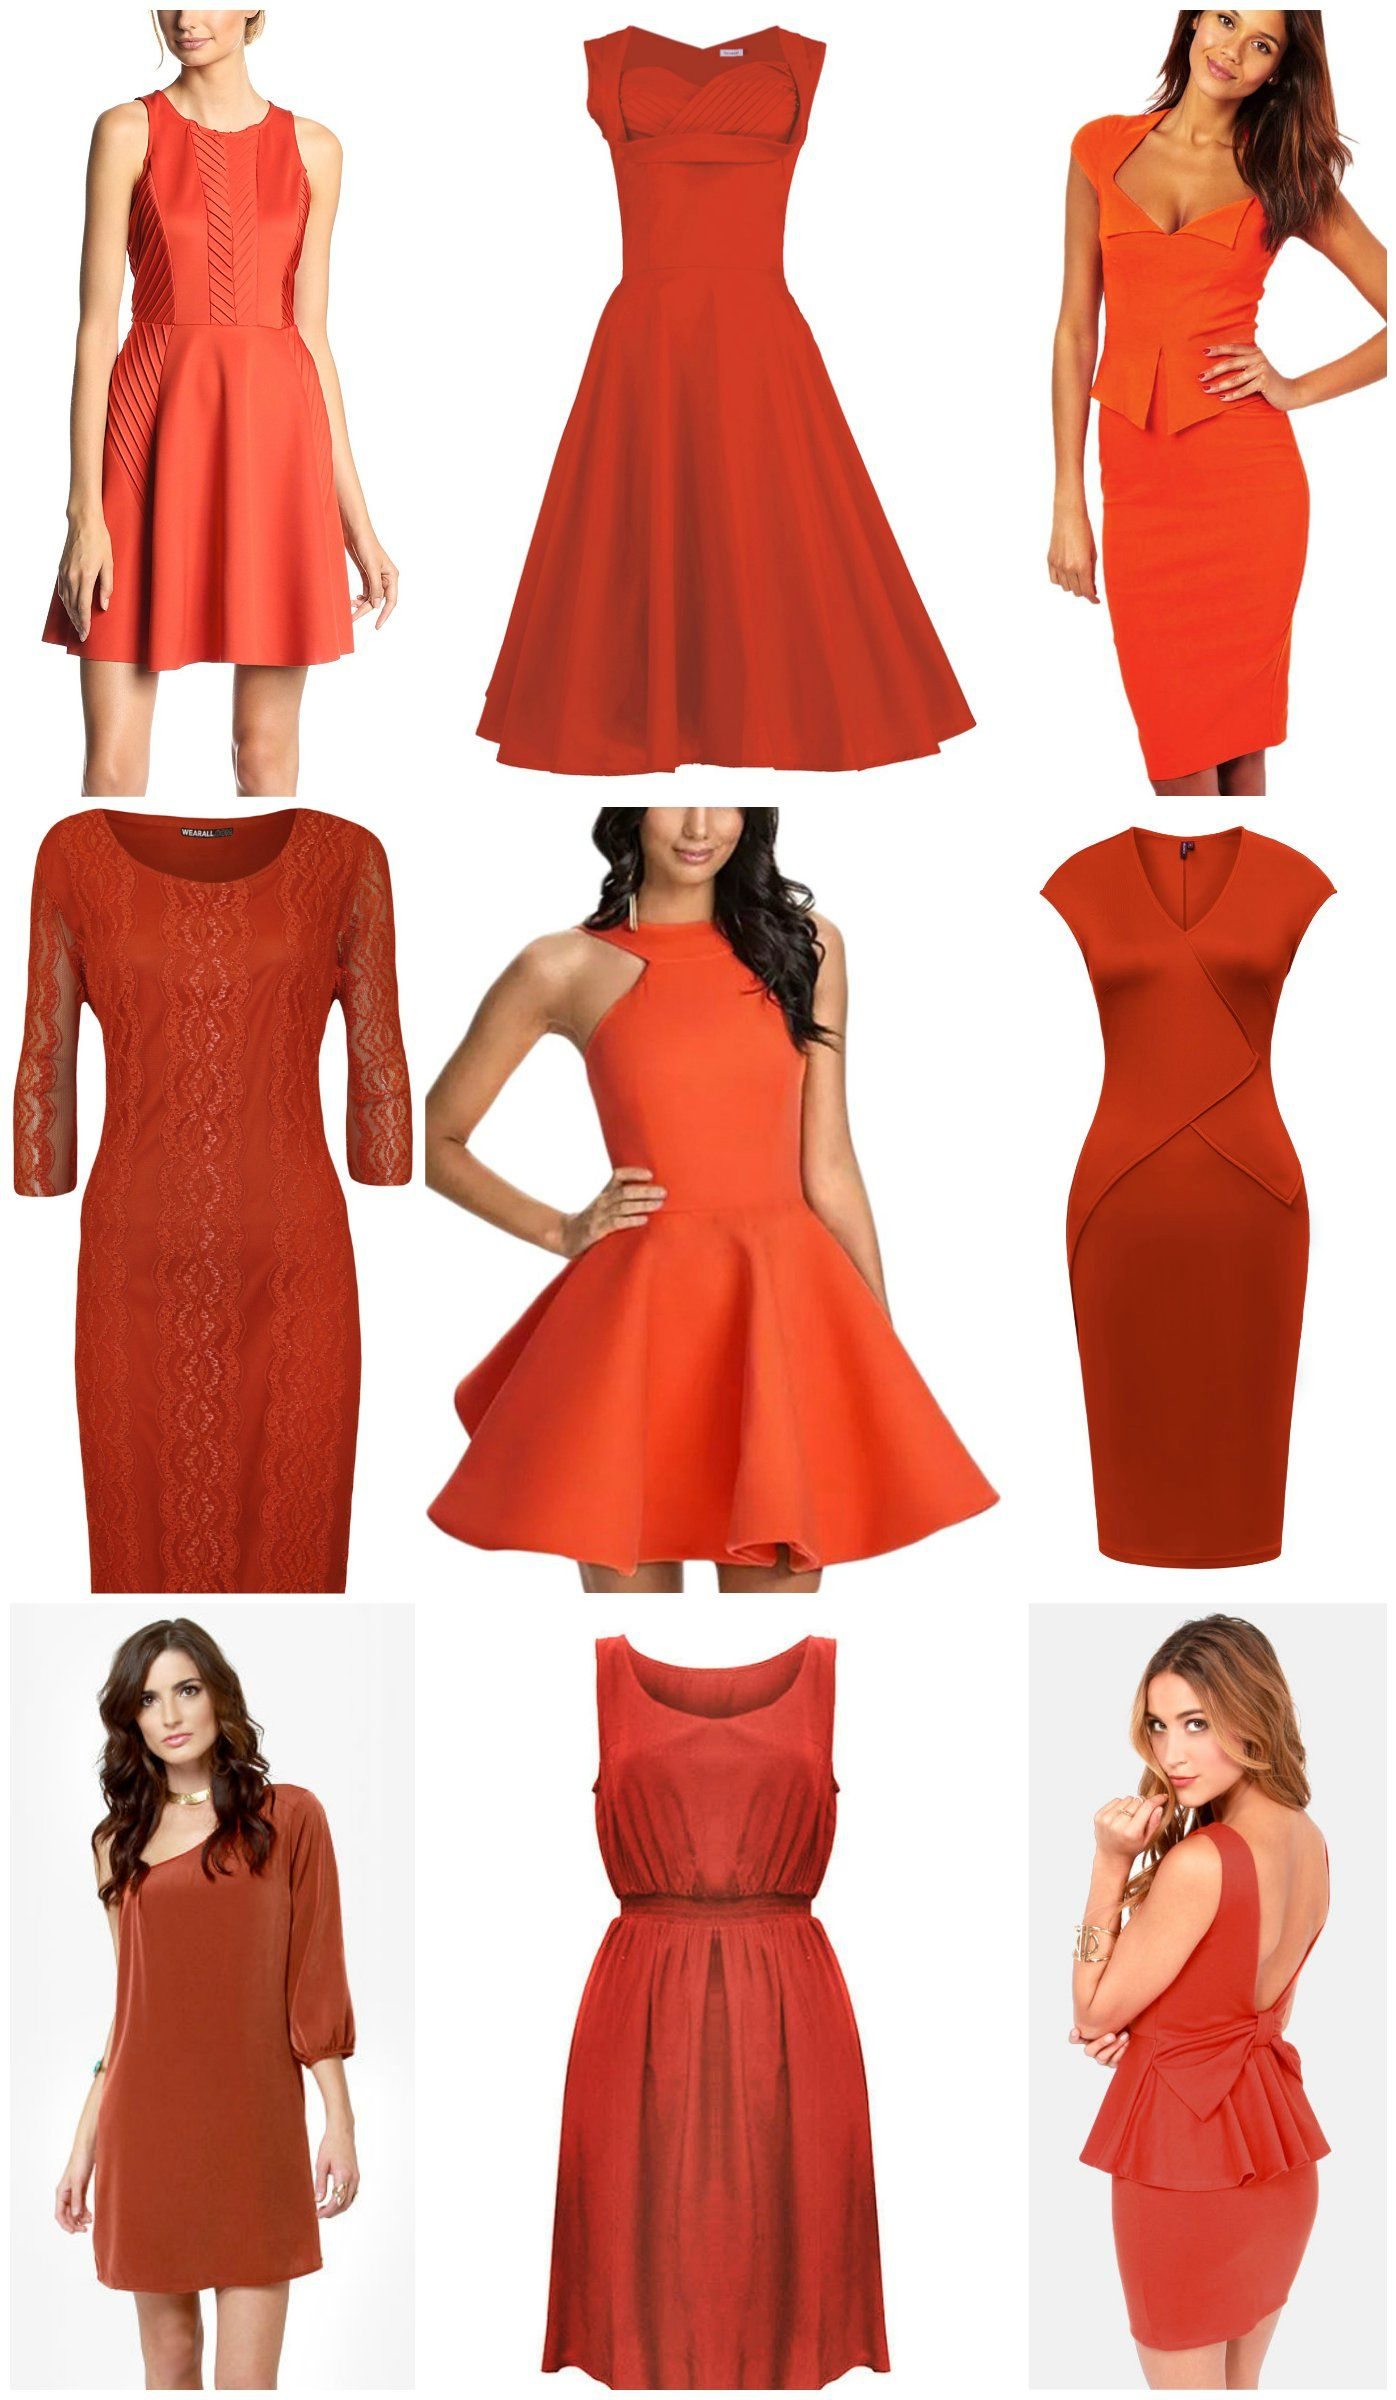 Burnt Orange Dresses Most From Amazon For Female Ushers Rustic